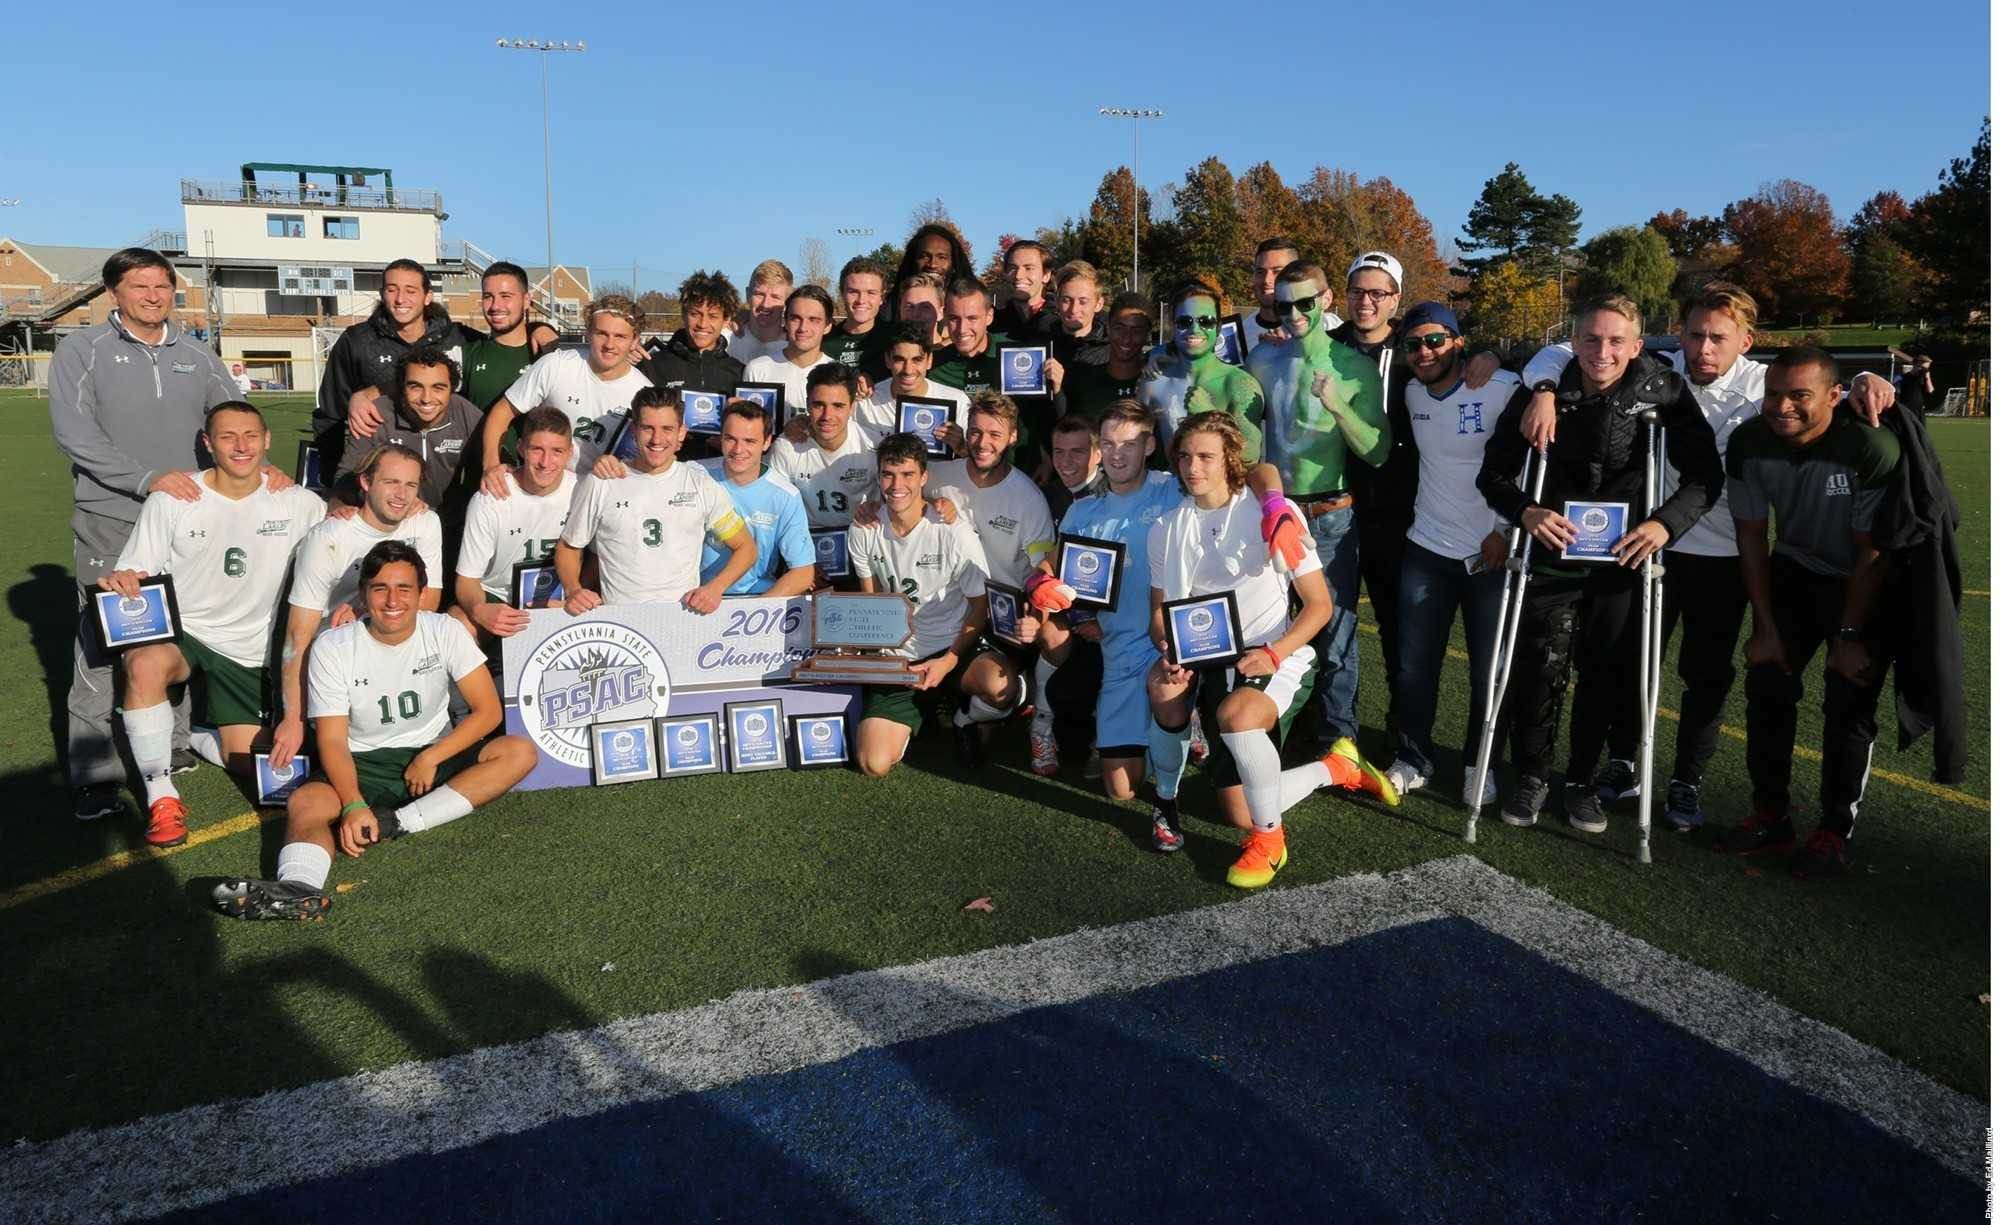 Mercyhurst Lakers became the new PSAC champions last Sunday, when they defeated Millersville, 2-1.